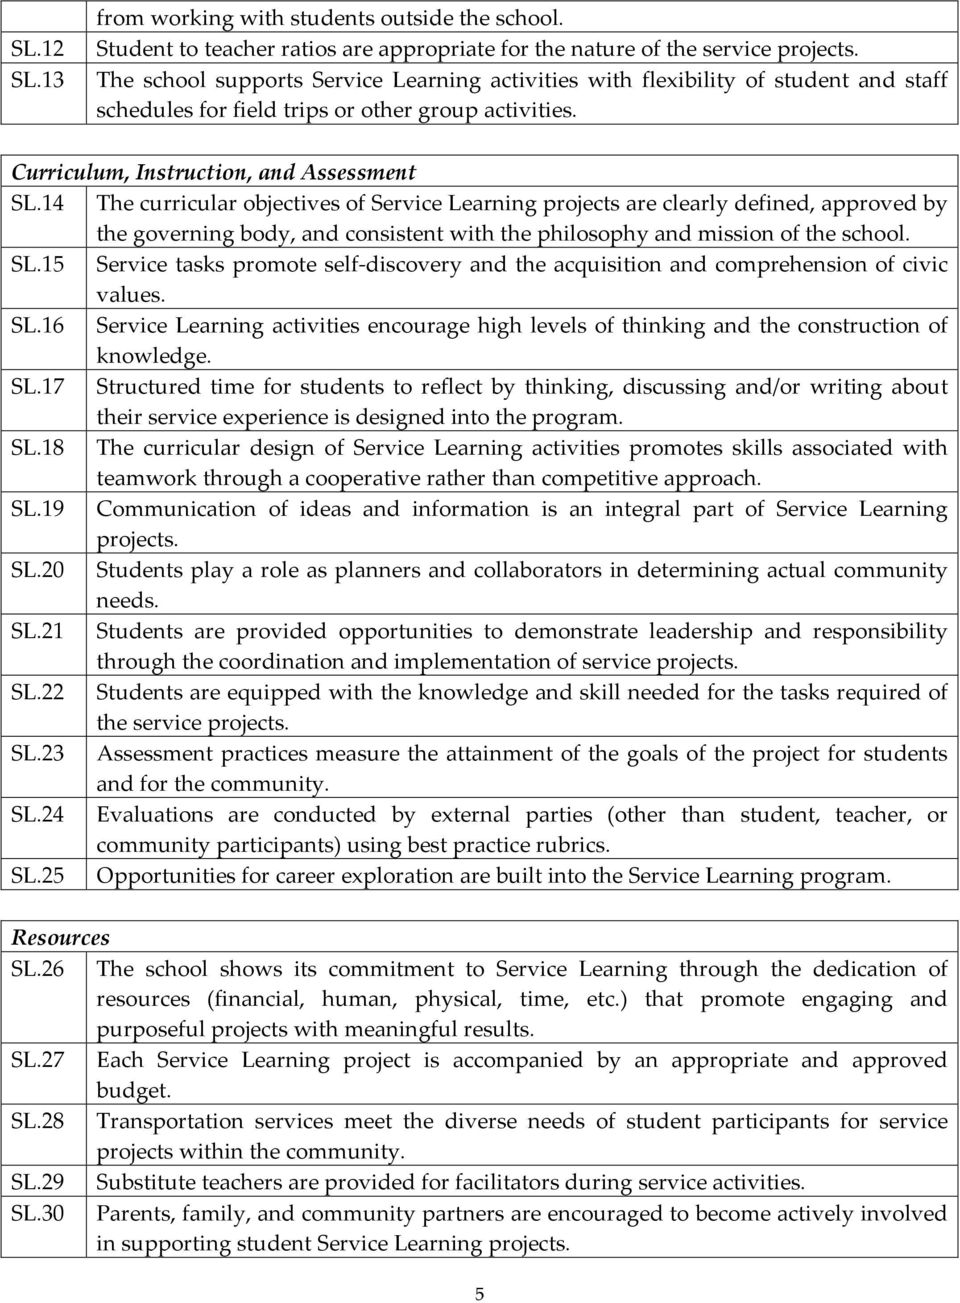 14 The curricular objectives of Service Learning projects are clearly defined, approved by the governing body, and consistent with the philosophy and mission of the school. SL.